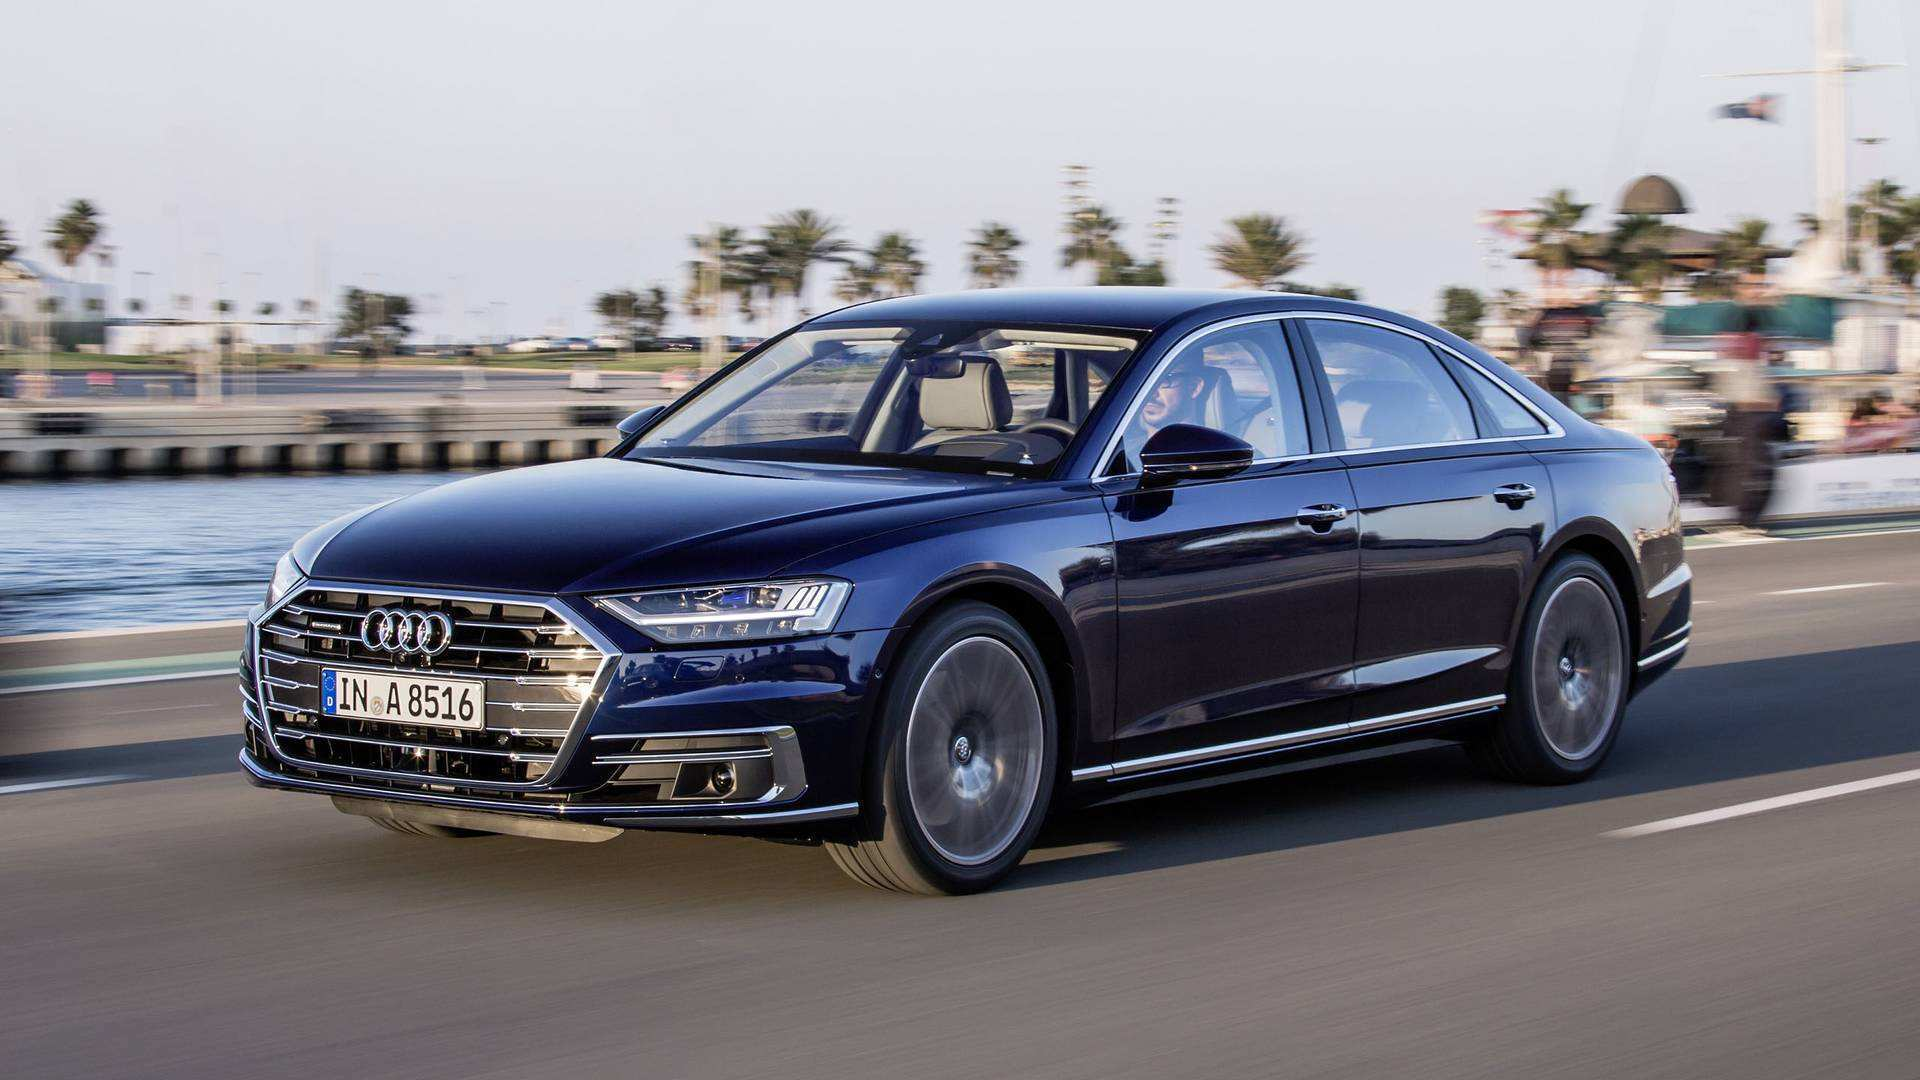 40 Gallery of 2019 Audi A8 Debut Pricing with 2019 Audi A8 Debut